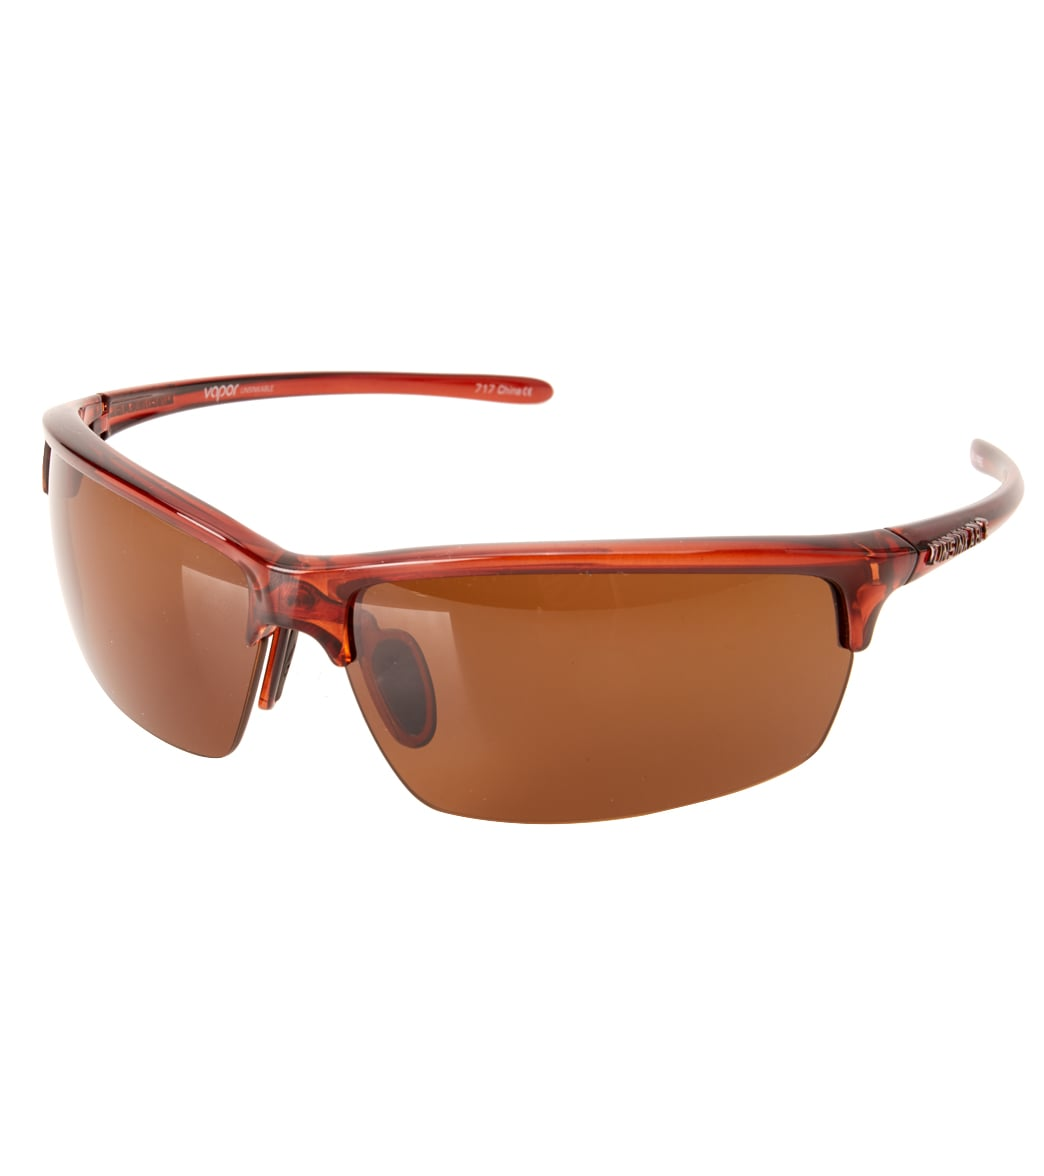 150d2cedbd Unsinkable Polarized Vapor Unsinkable Polarized Floating Sunglasses at  SwimOutlet.com - Free Shipping